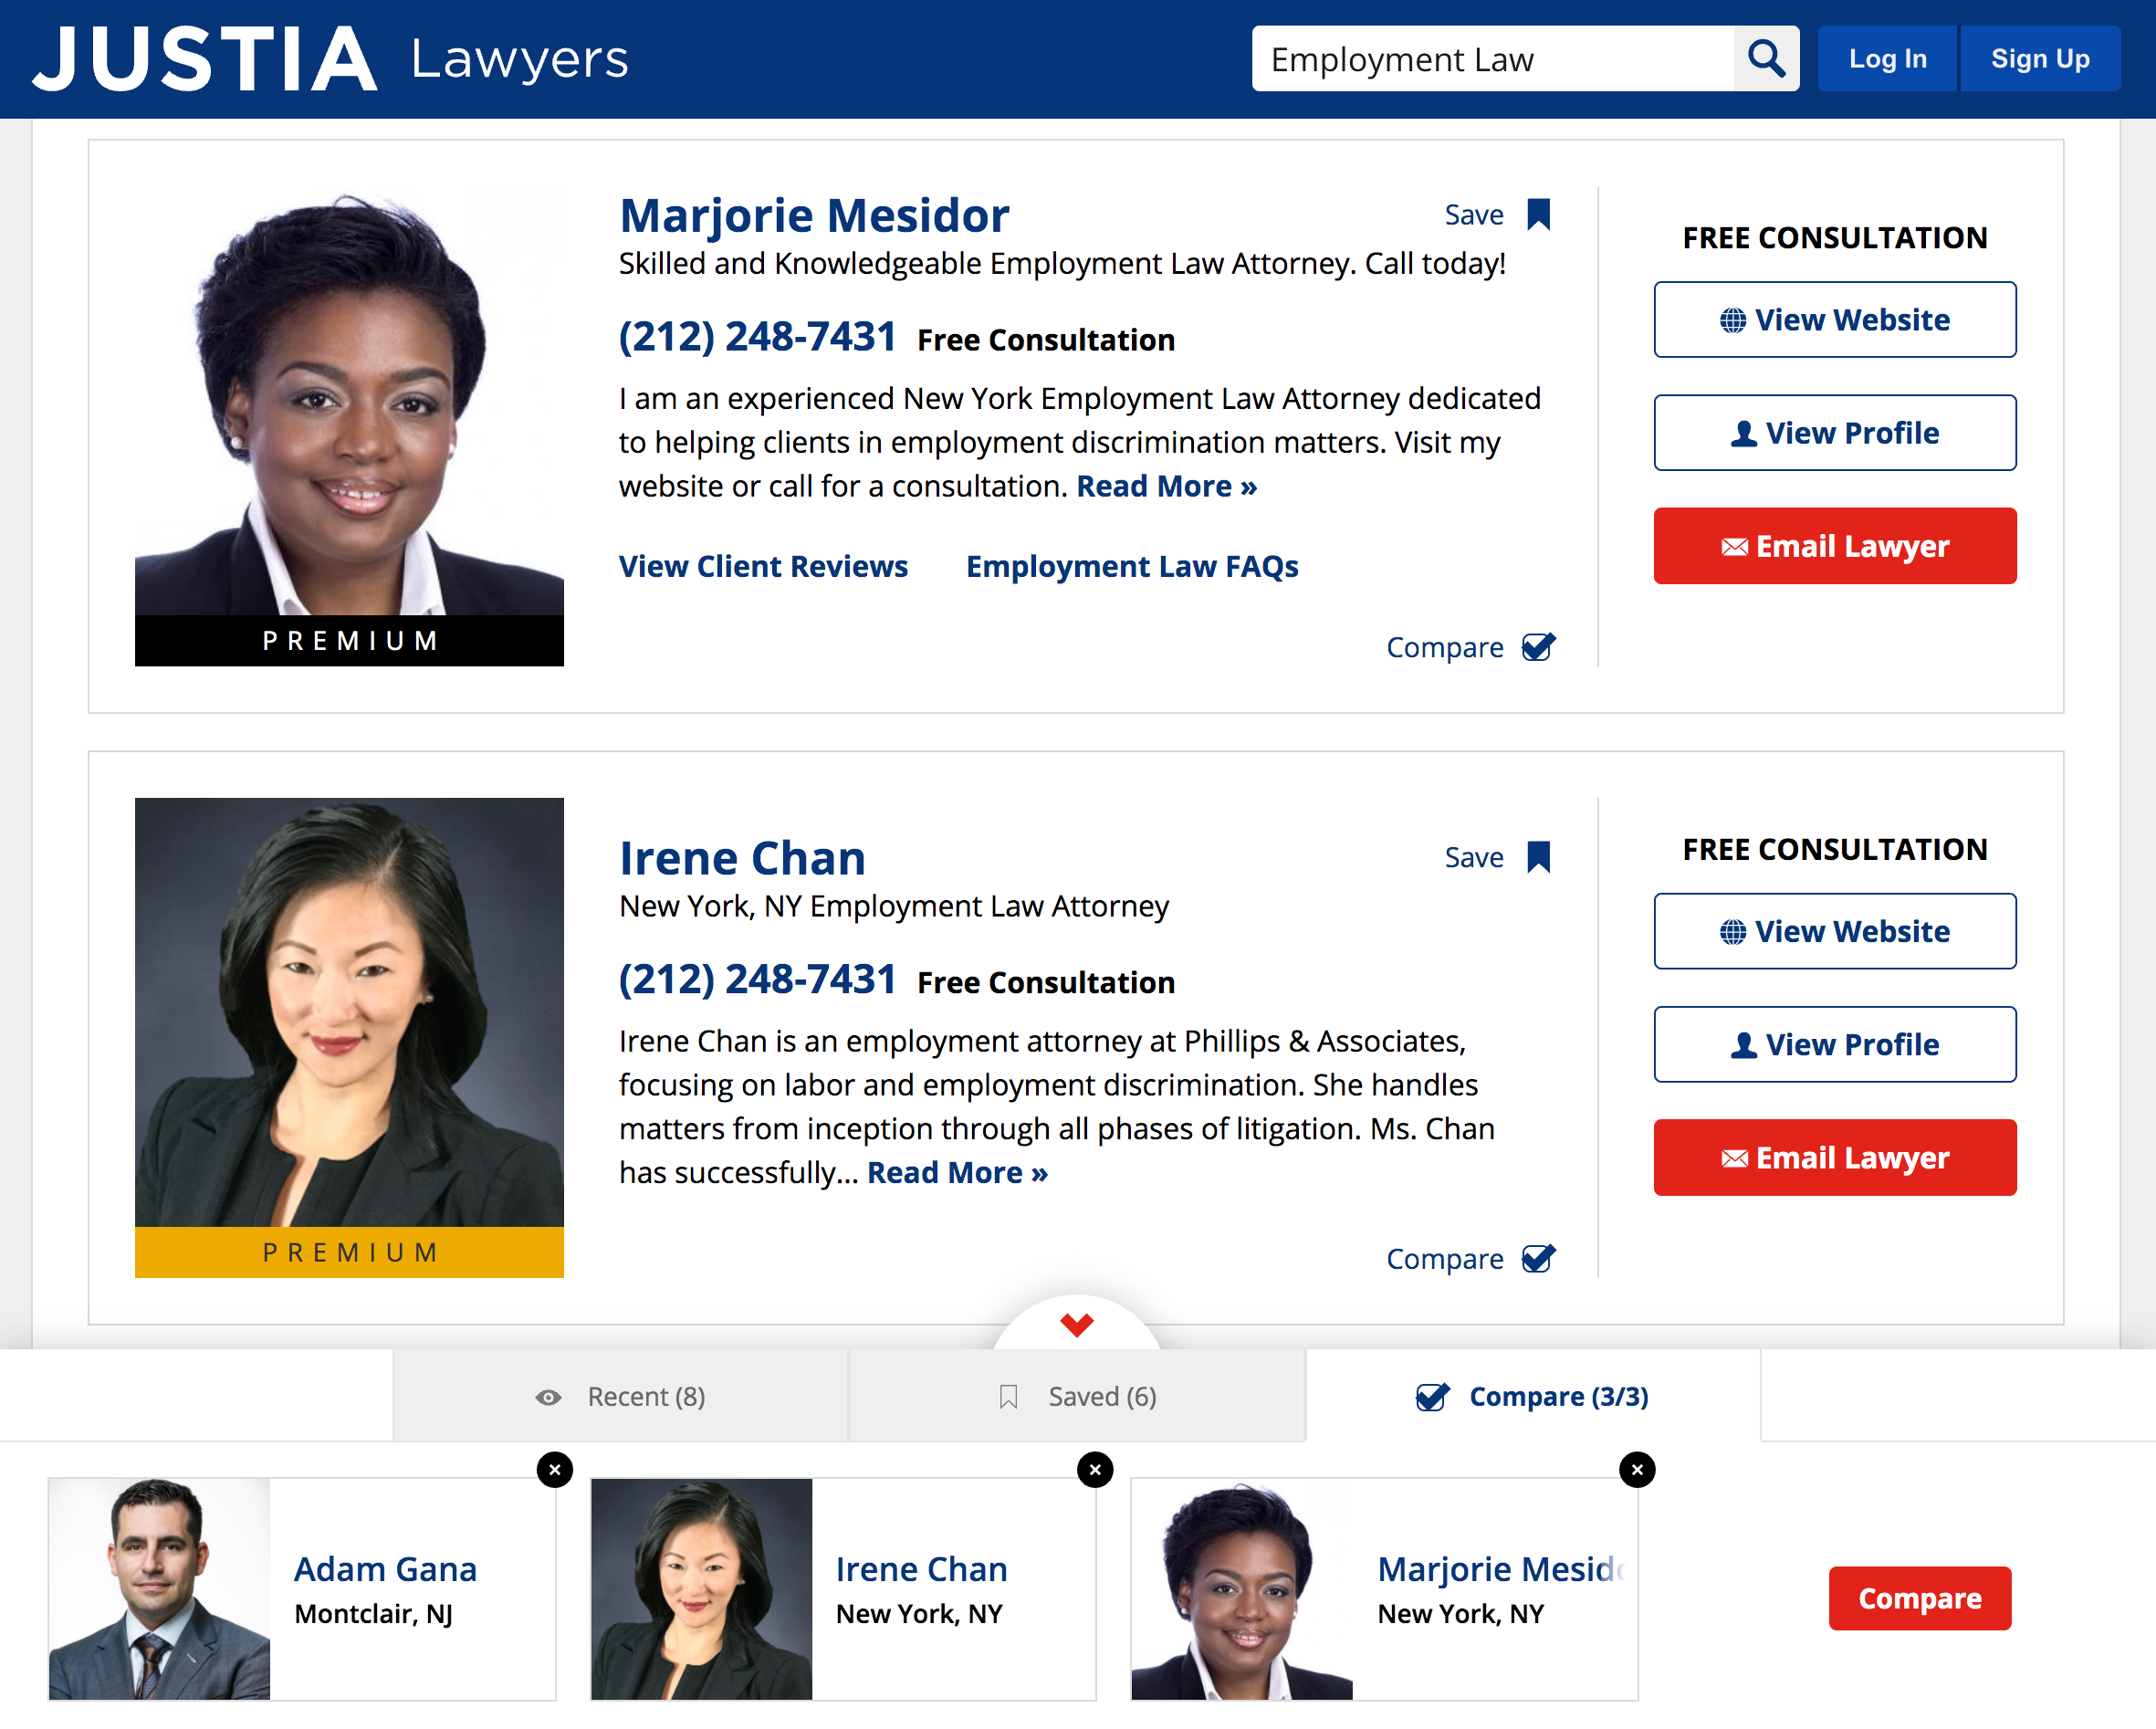 Screenshot of the lawyer comparison tab in the toolbox.